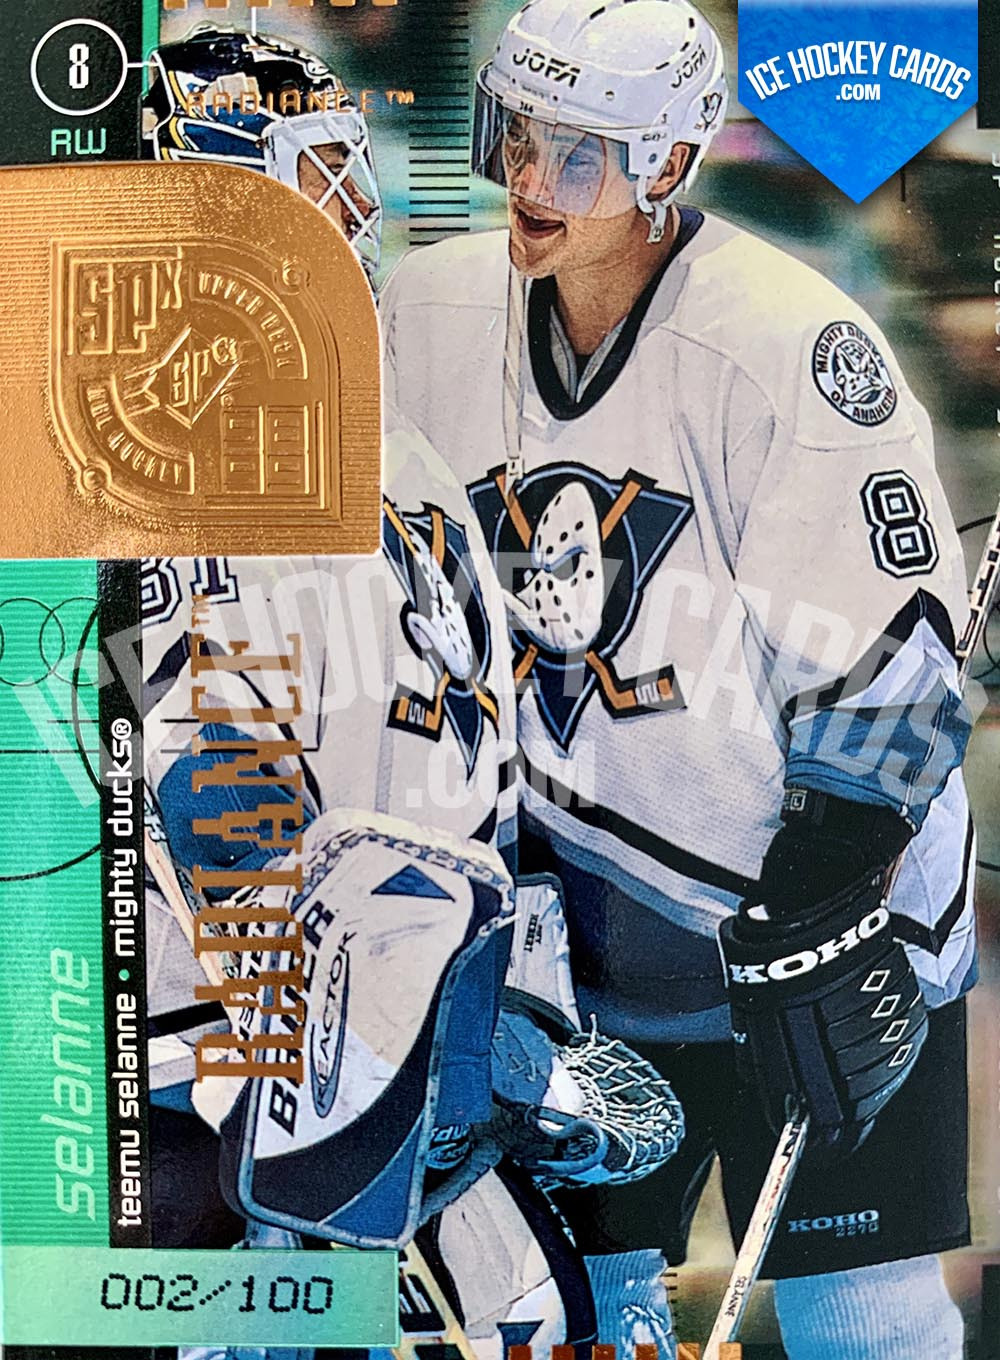 Upper Deck - SPx 1999-20 - Teemu Selanne Radiance Card # to 100